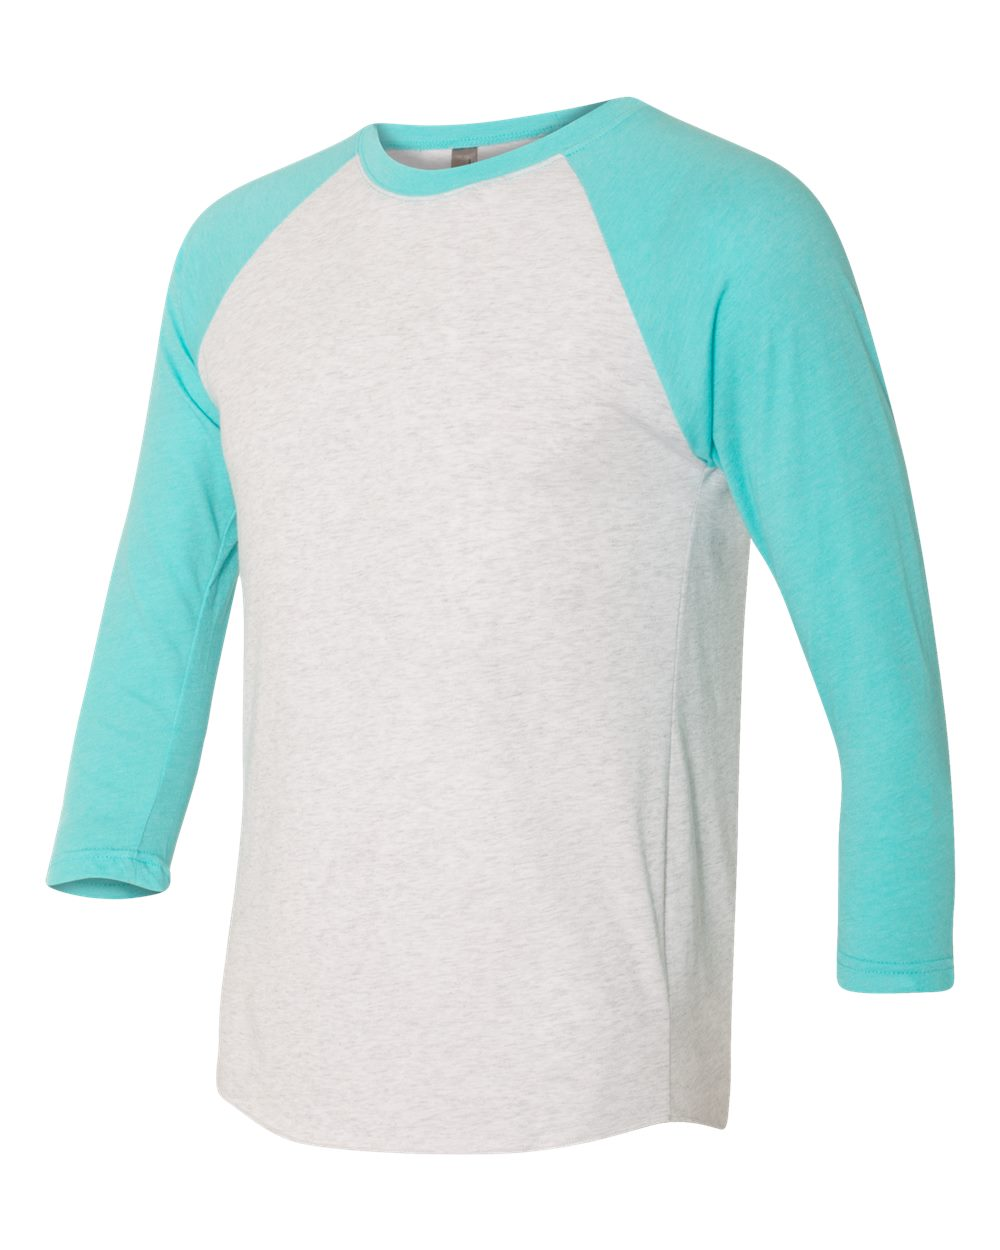 Next Level 6051 Unisex Tri Blend Three Quarter Sleeve